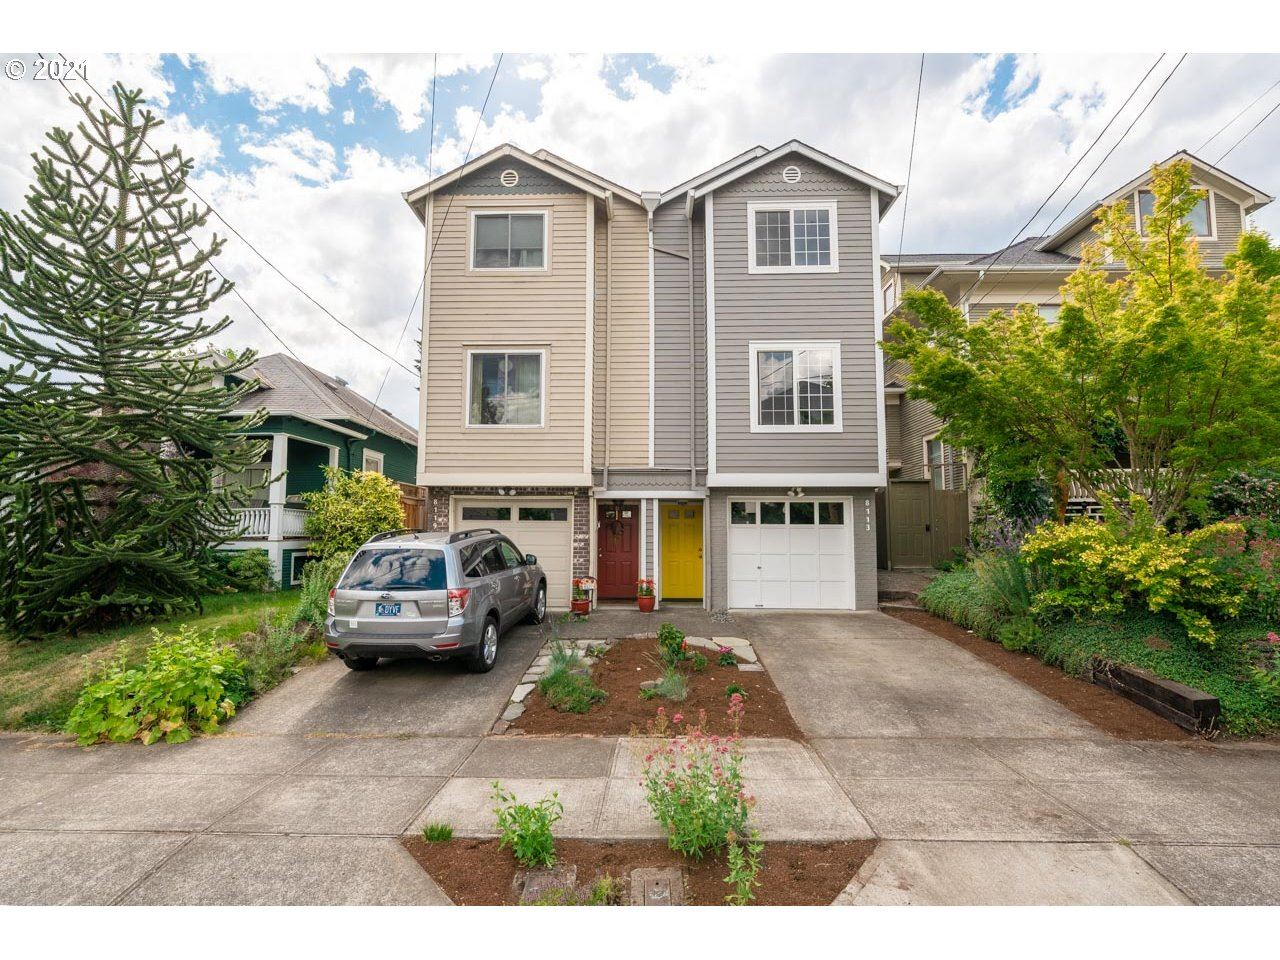 8113 SE 16TH AVE, Portland, OR 97202 - MLS#: 21611197